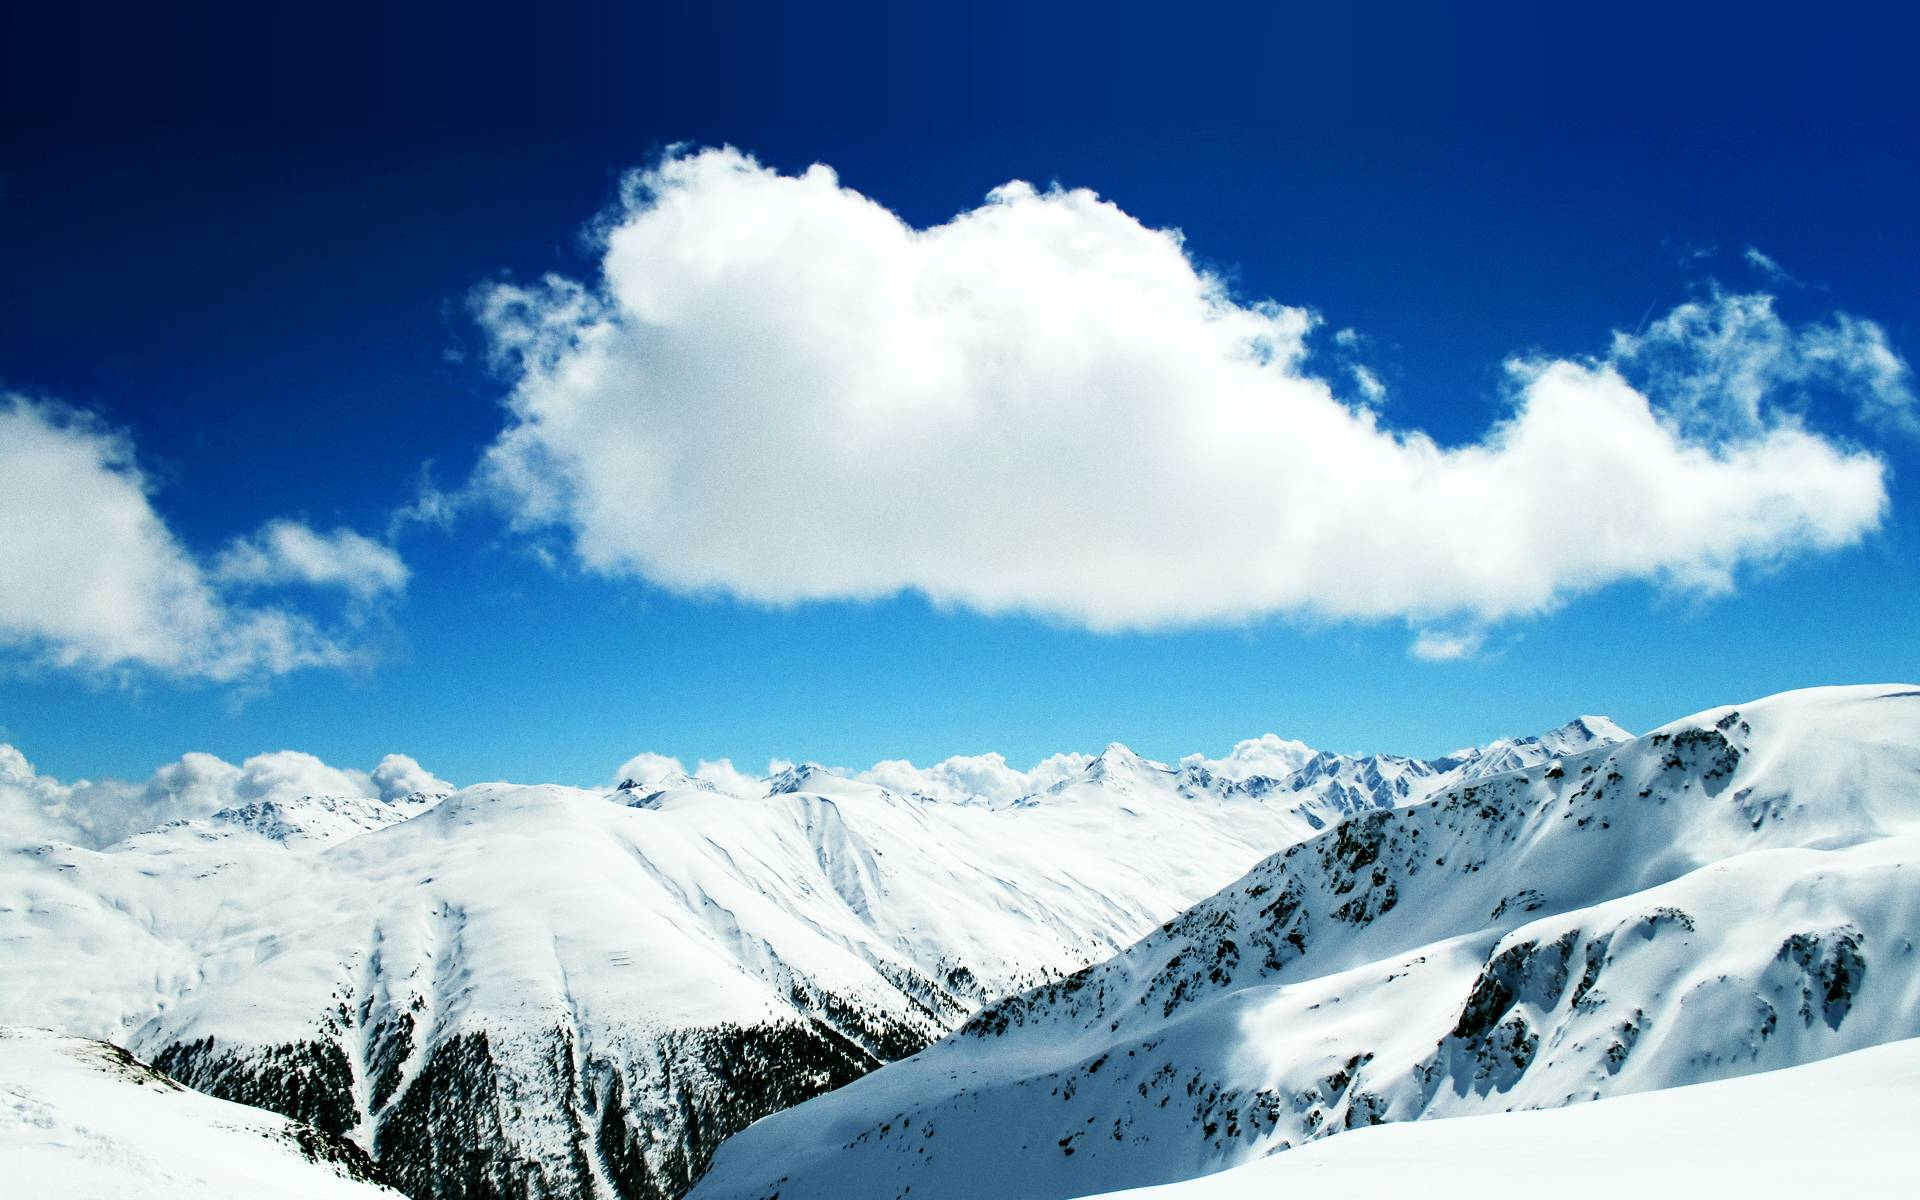 Hd Snow Mountain Wallpapers